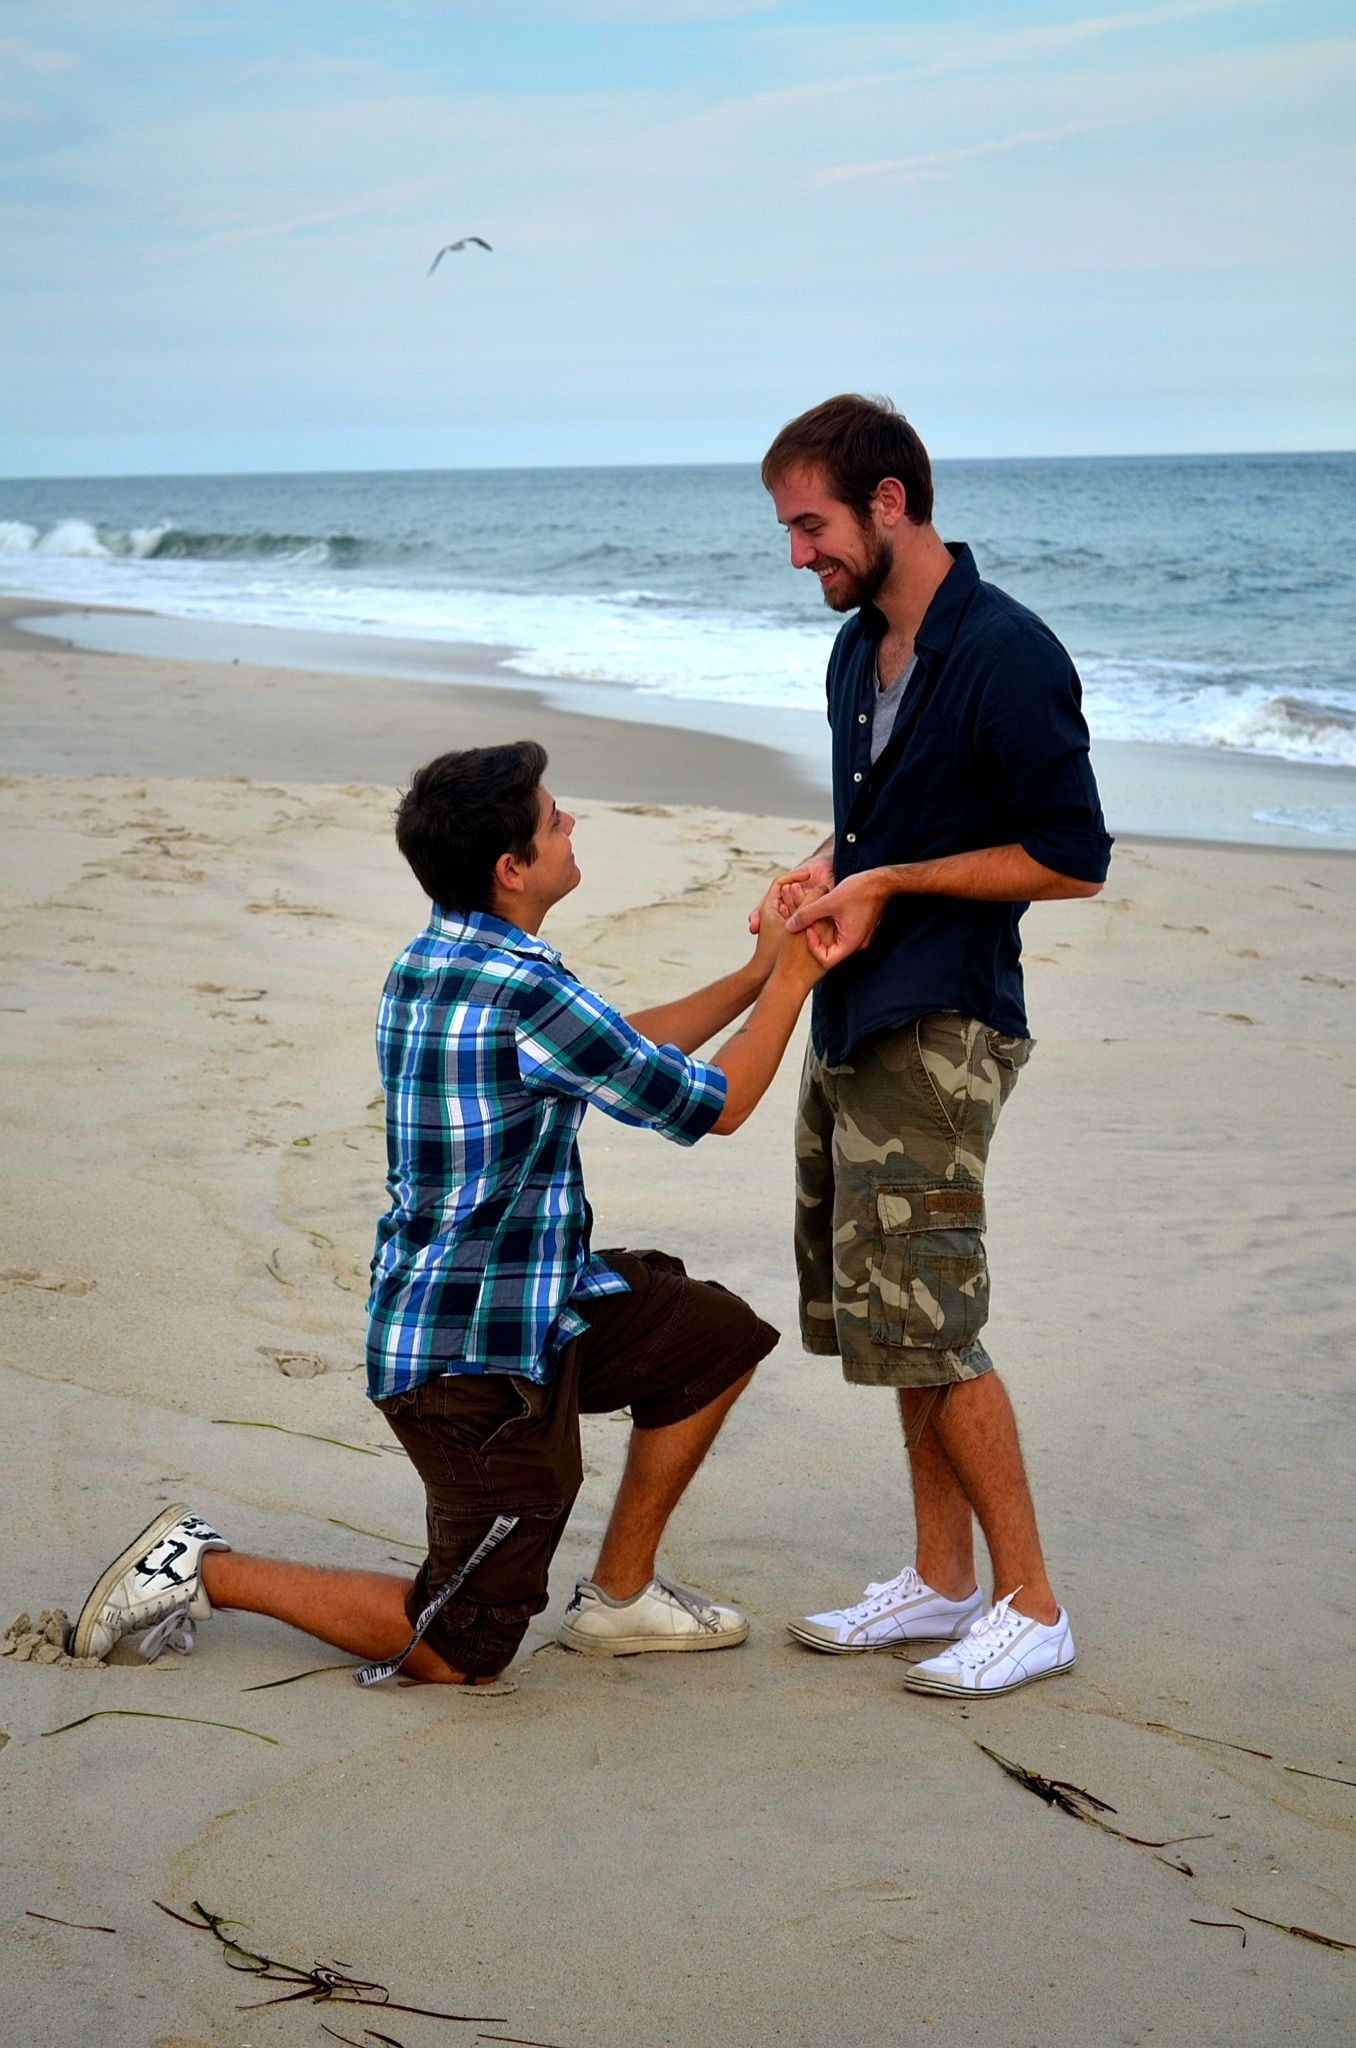 My Boyfriend Now Fiance Proposed To Me At Robert Moses Beach Field 5 Fire Island